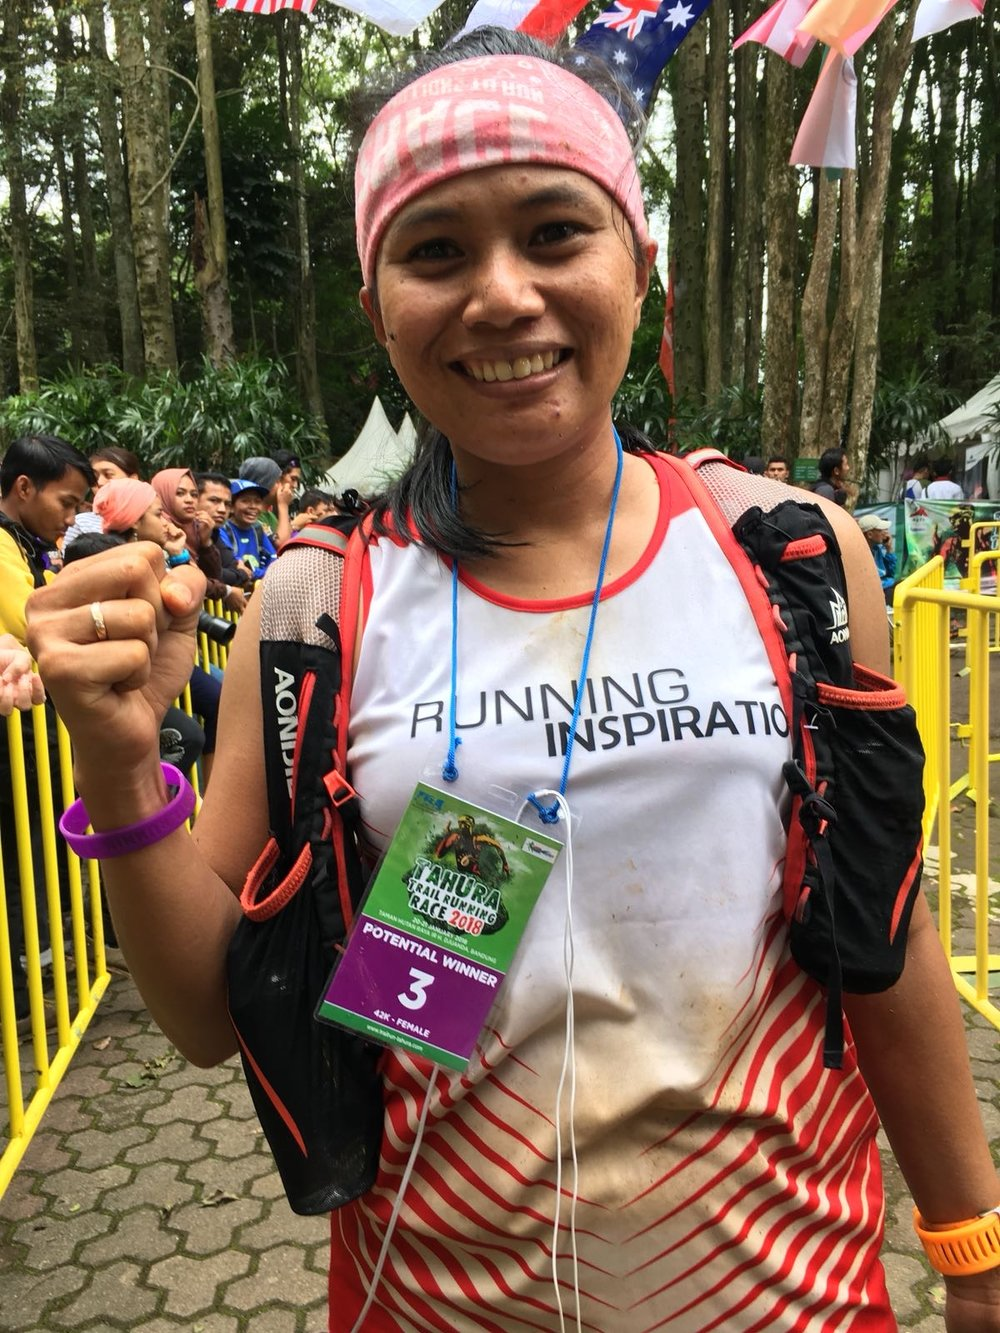 Sri Wahyuni gave race favourite Ruth Theresia a tough challenge in Brunei. Can she do the same on. the much more technical Mantra trail?